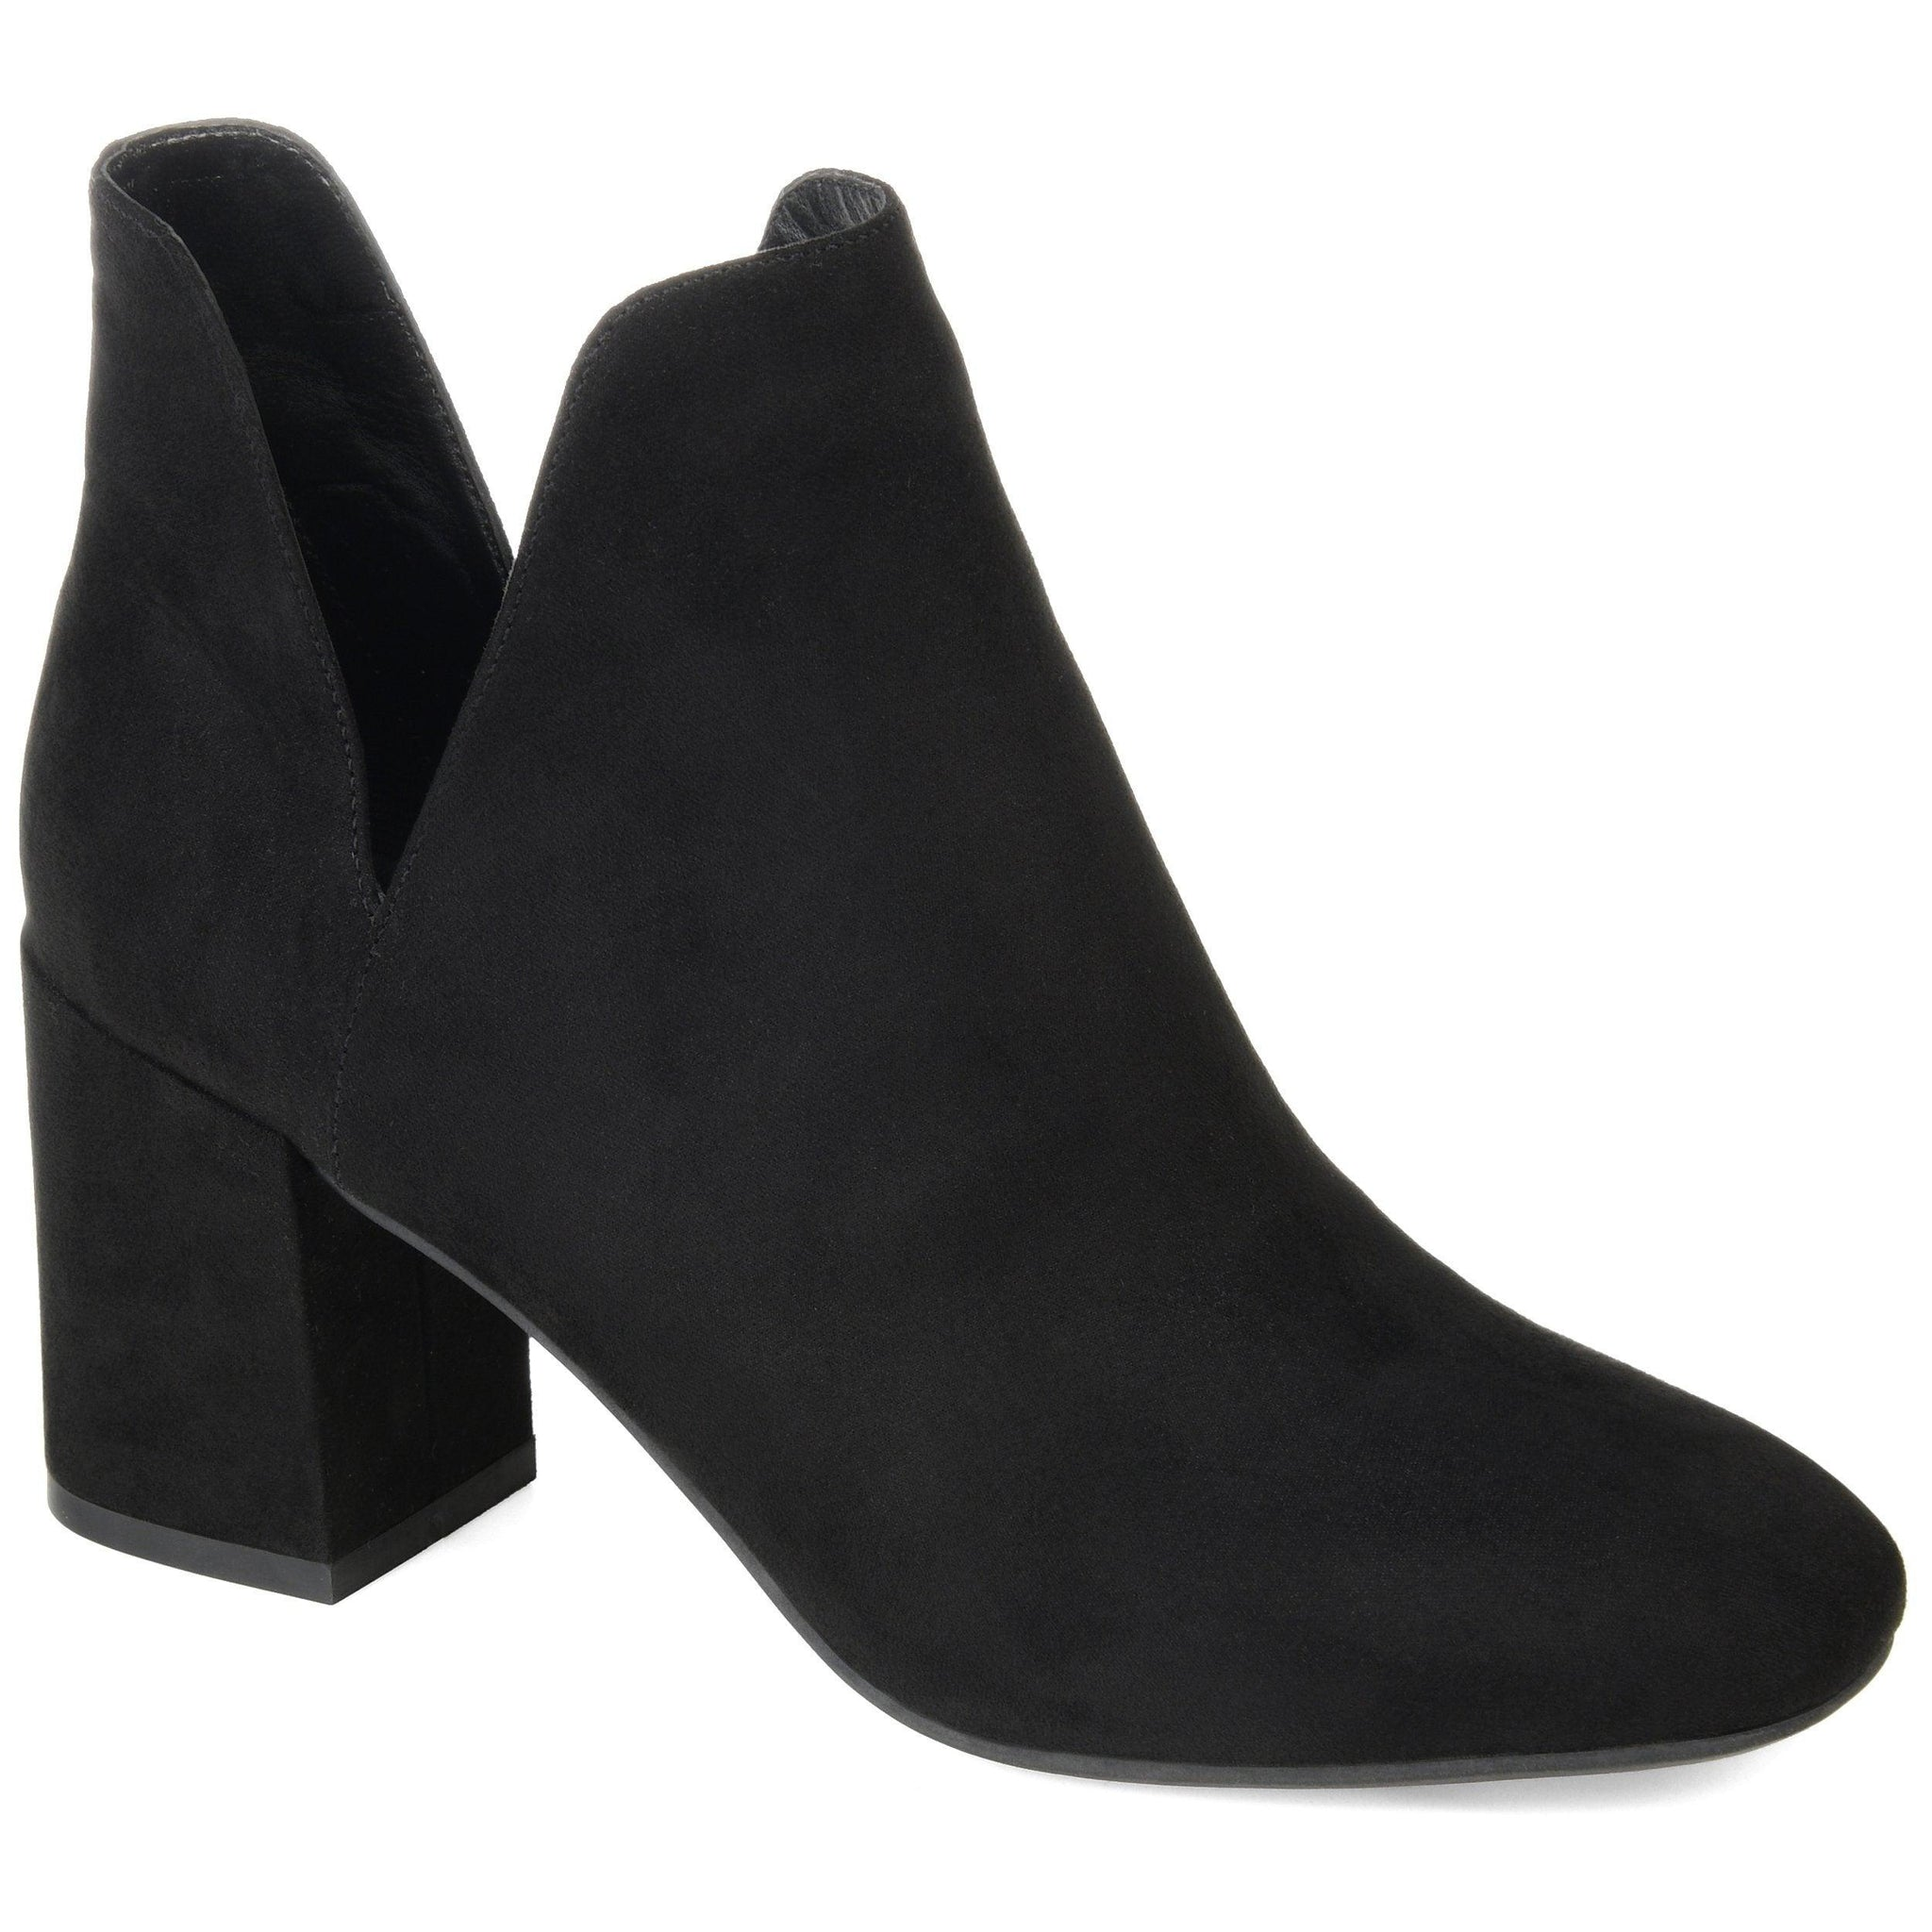 GWENN Shoes Journee Collection Black 5.5